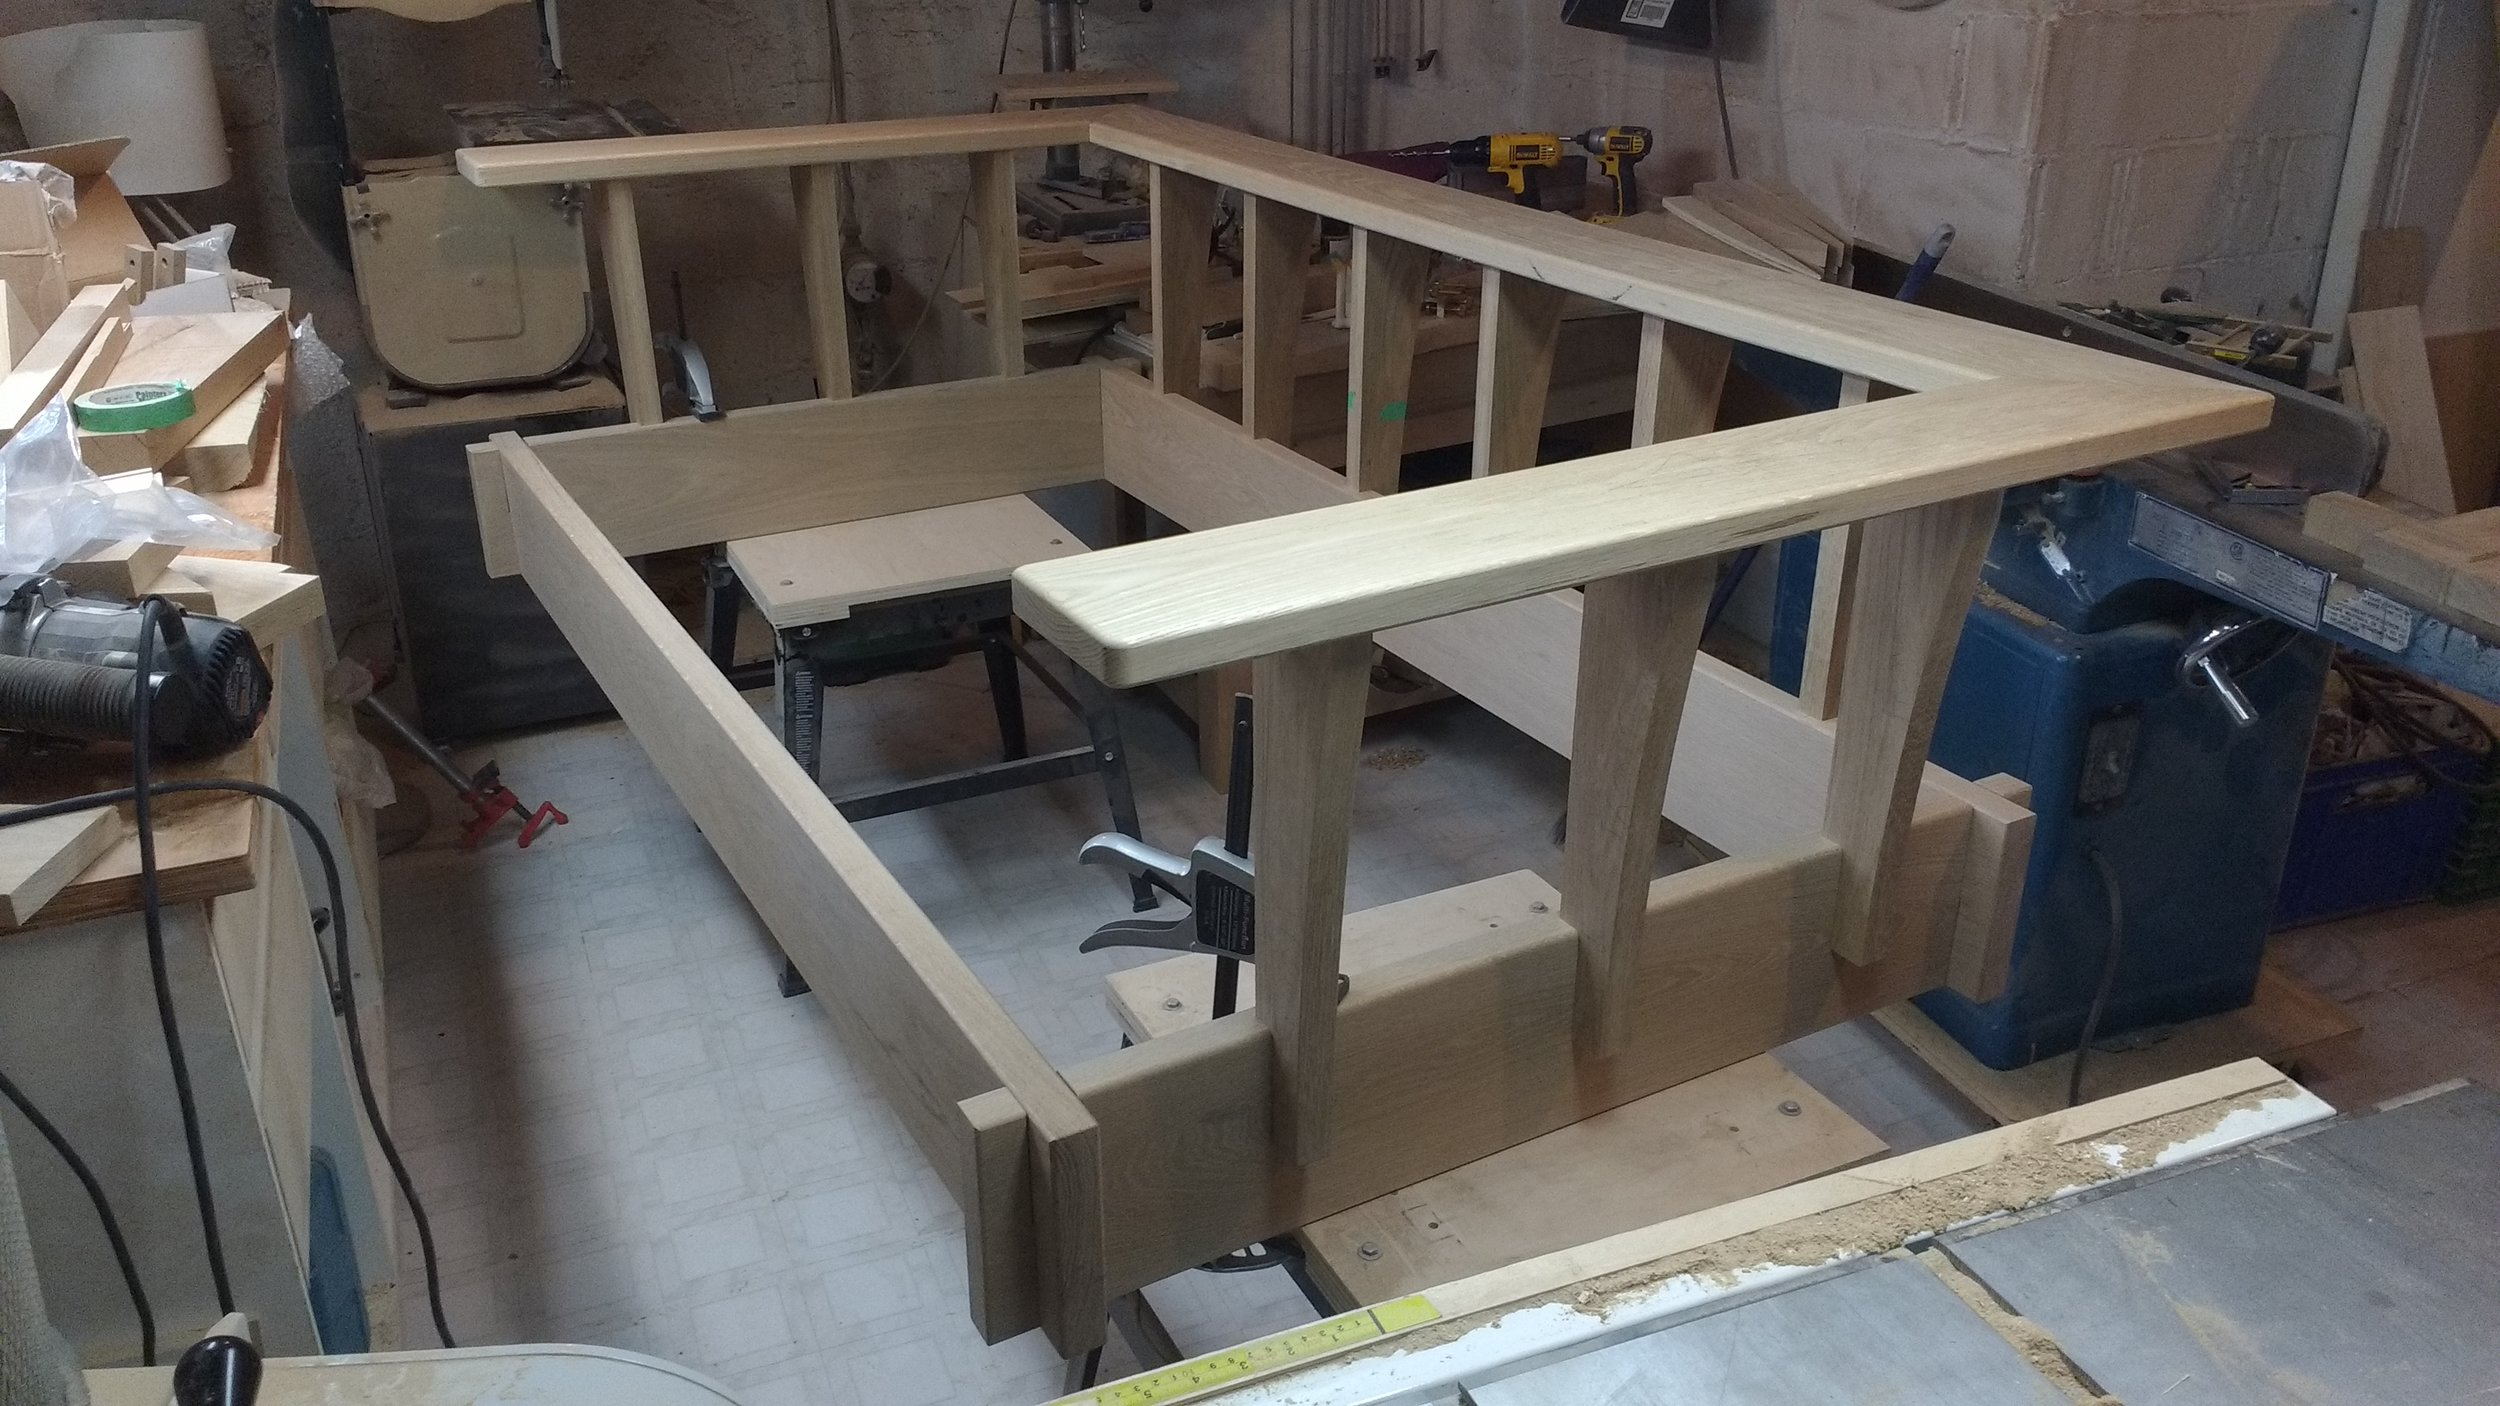 Porch swing/Day bed construction